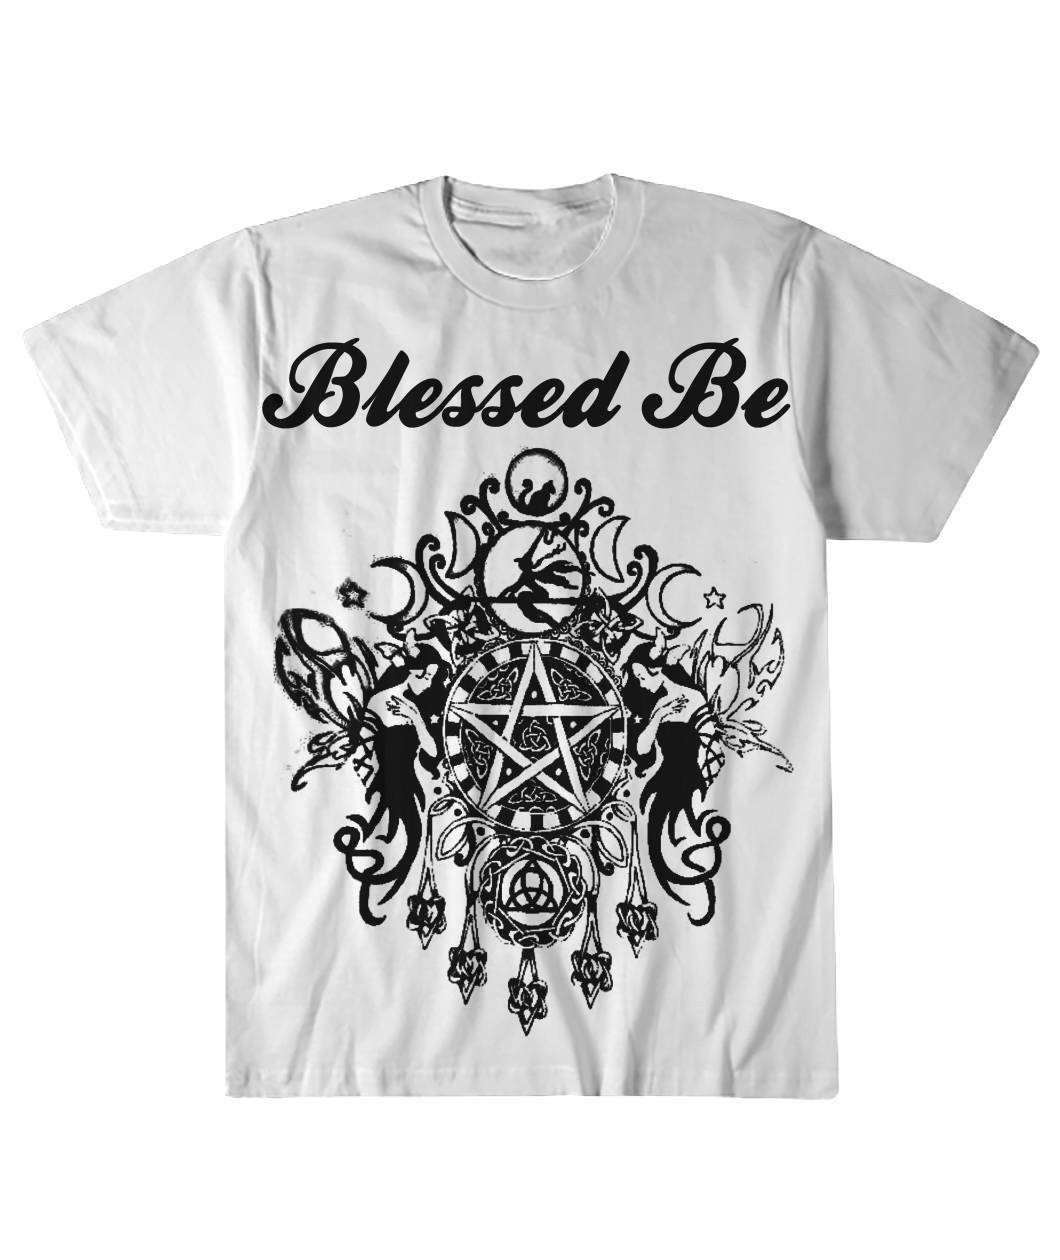 Wicca Blessed Be T Shirt Mofotee Inc